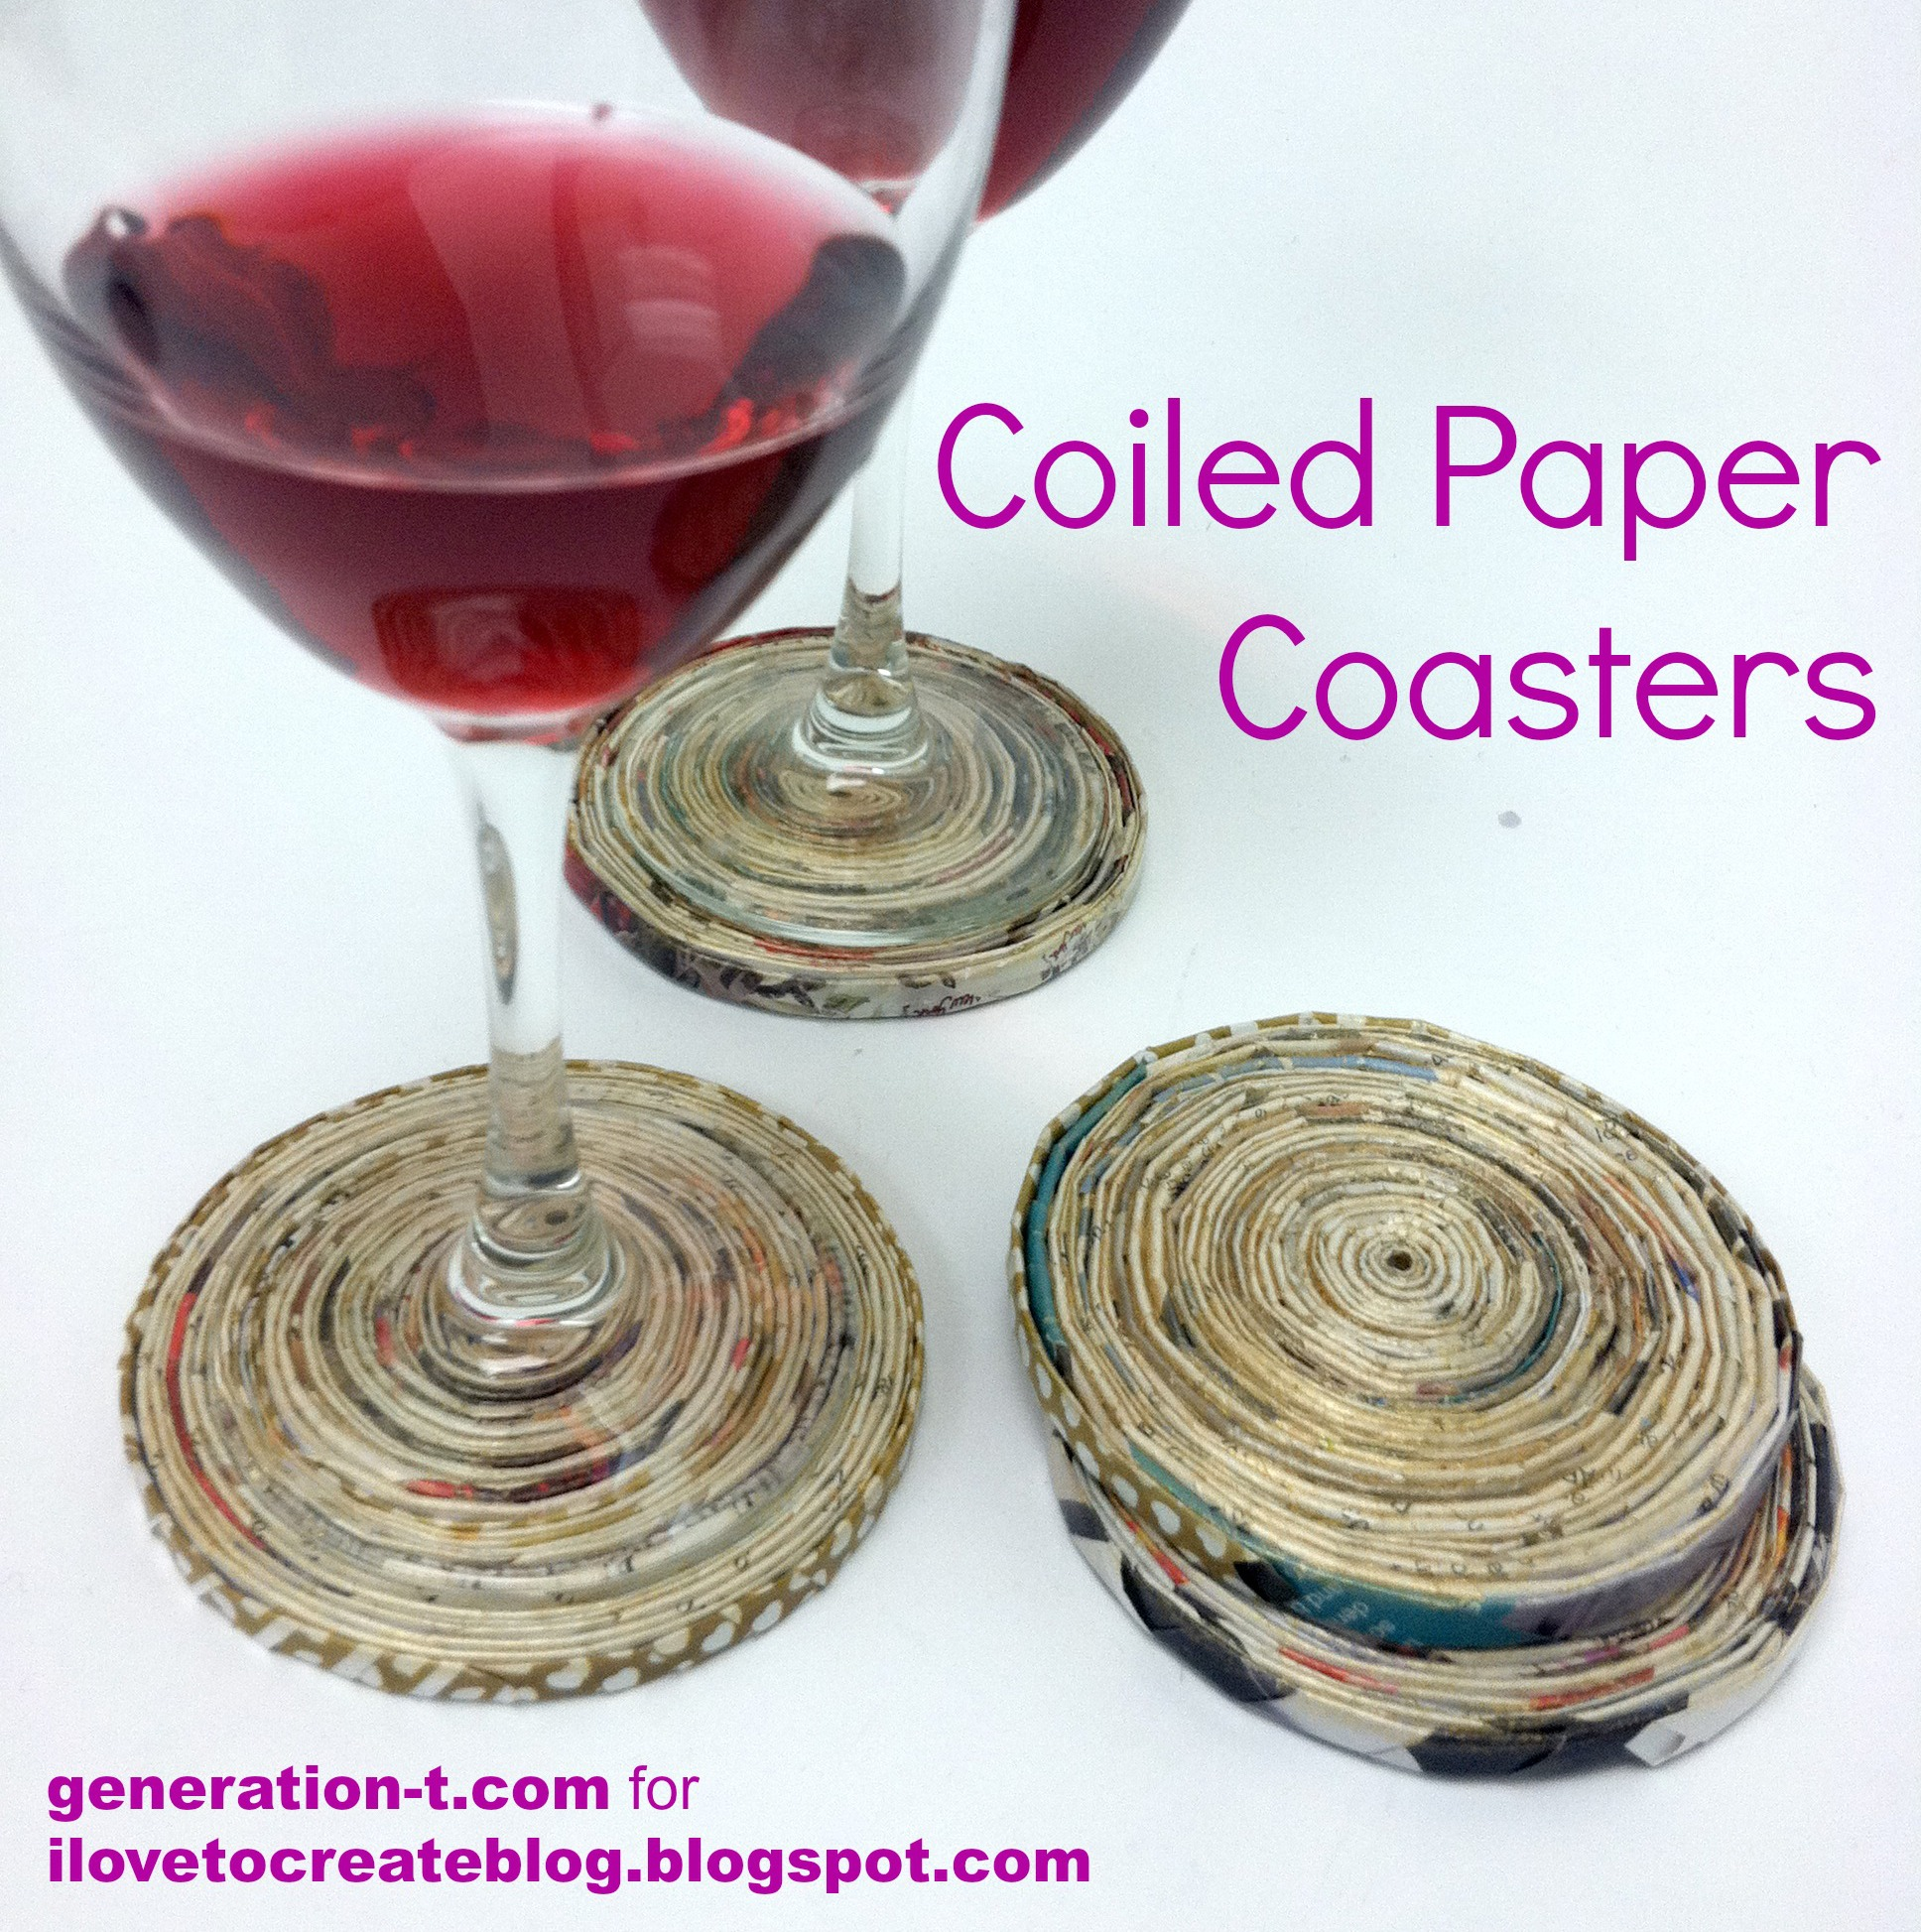 Coiled Paper Coasters